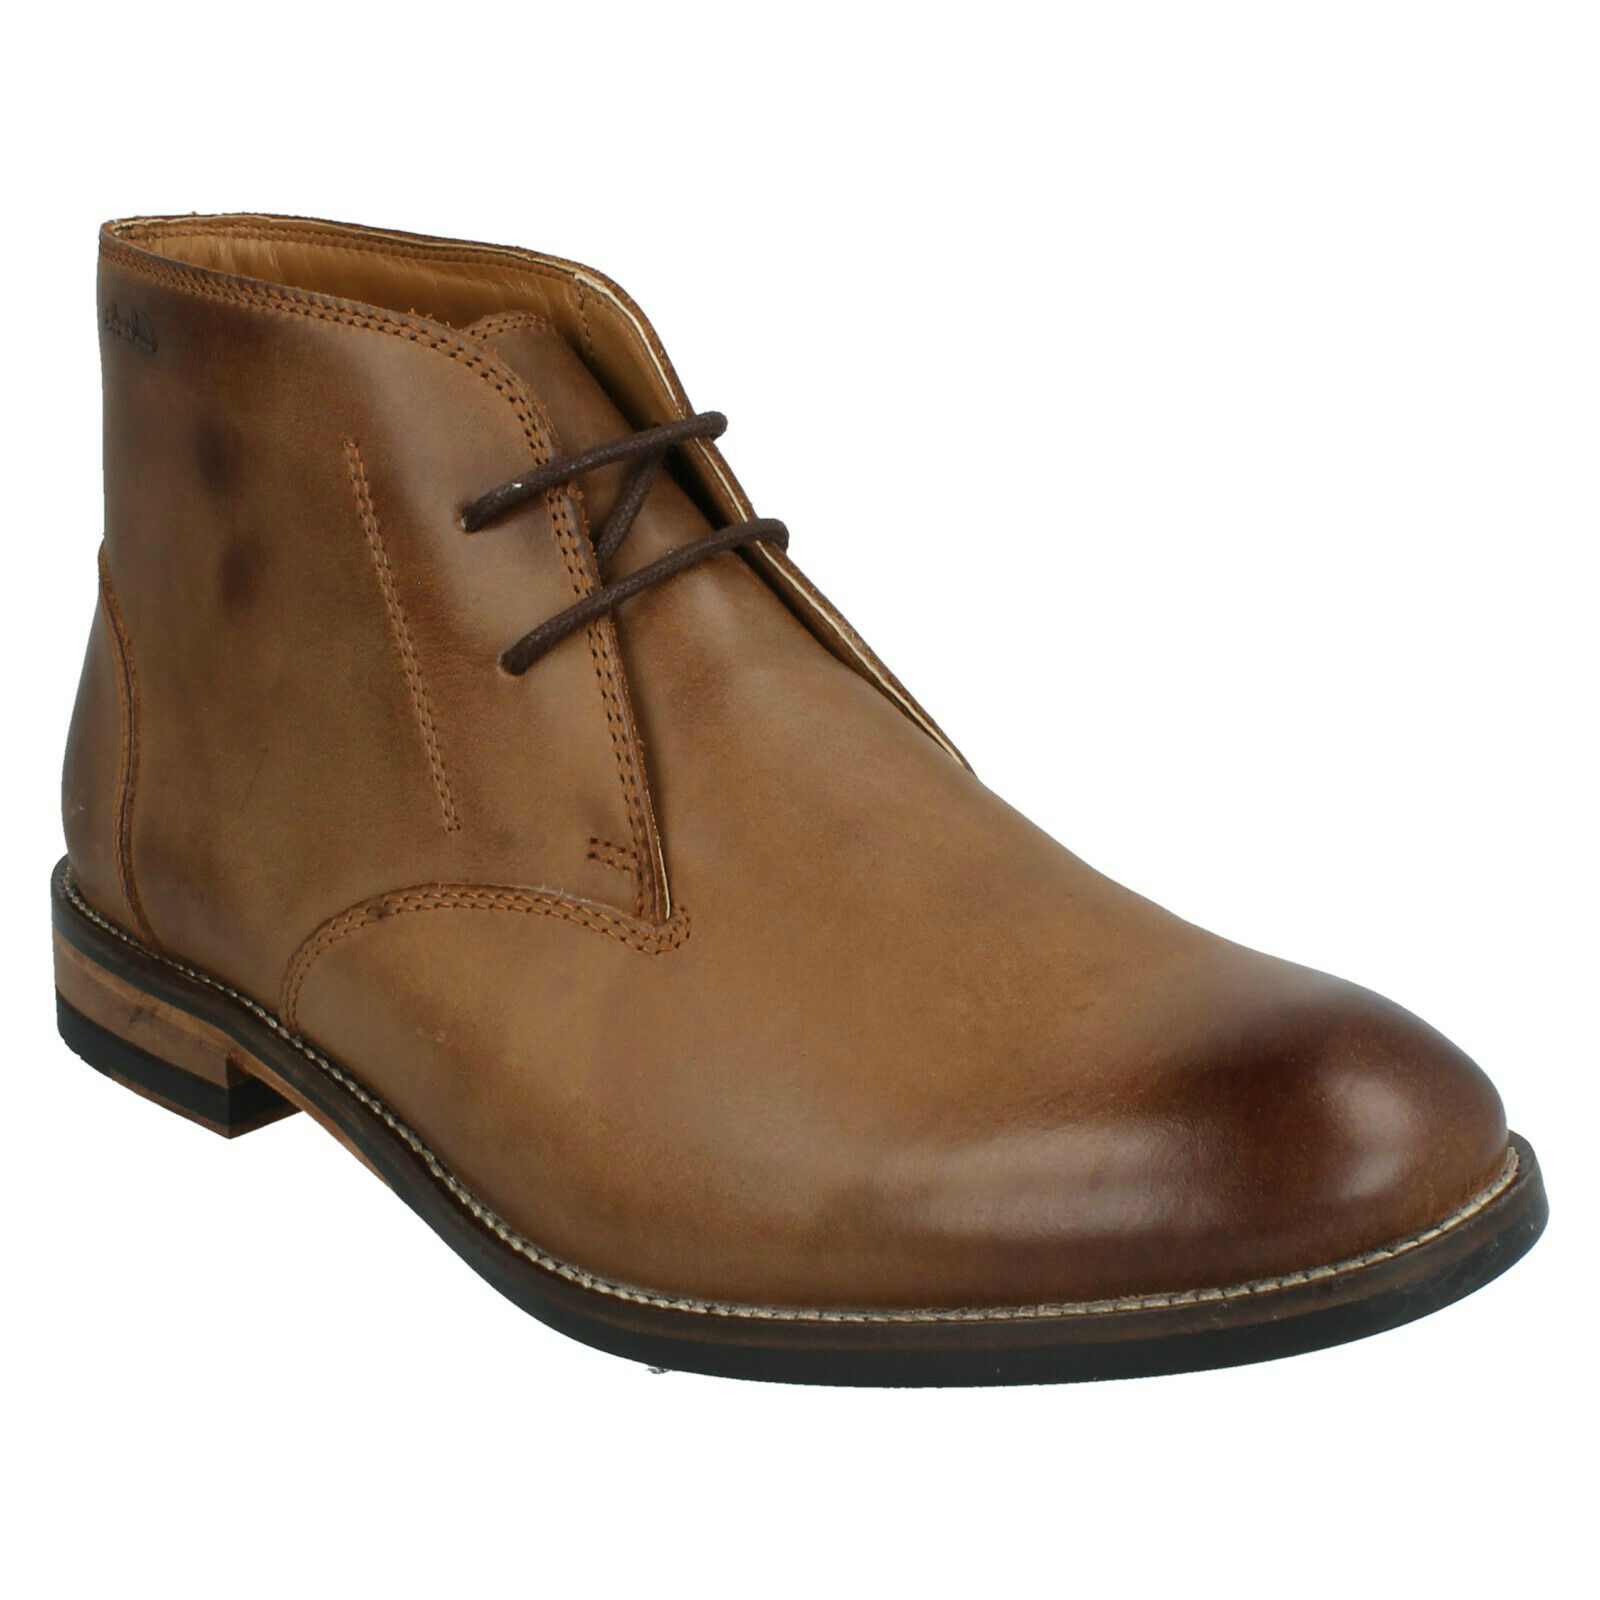 MENS CLARKS EXTON UP LACE UP CLASSIC DESERT CASUAL WORK LEATHER ANKLE BOOTS SIZE